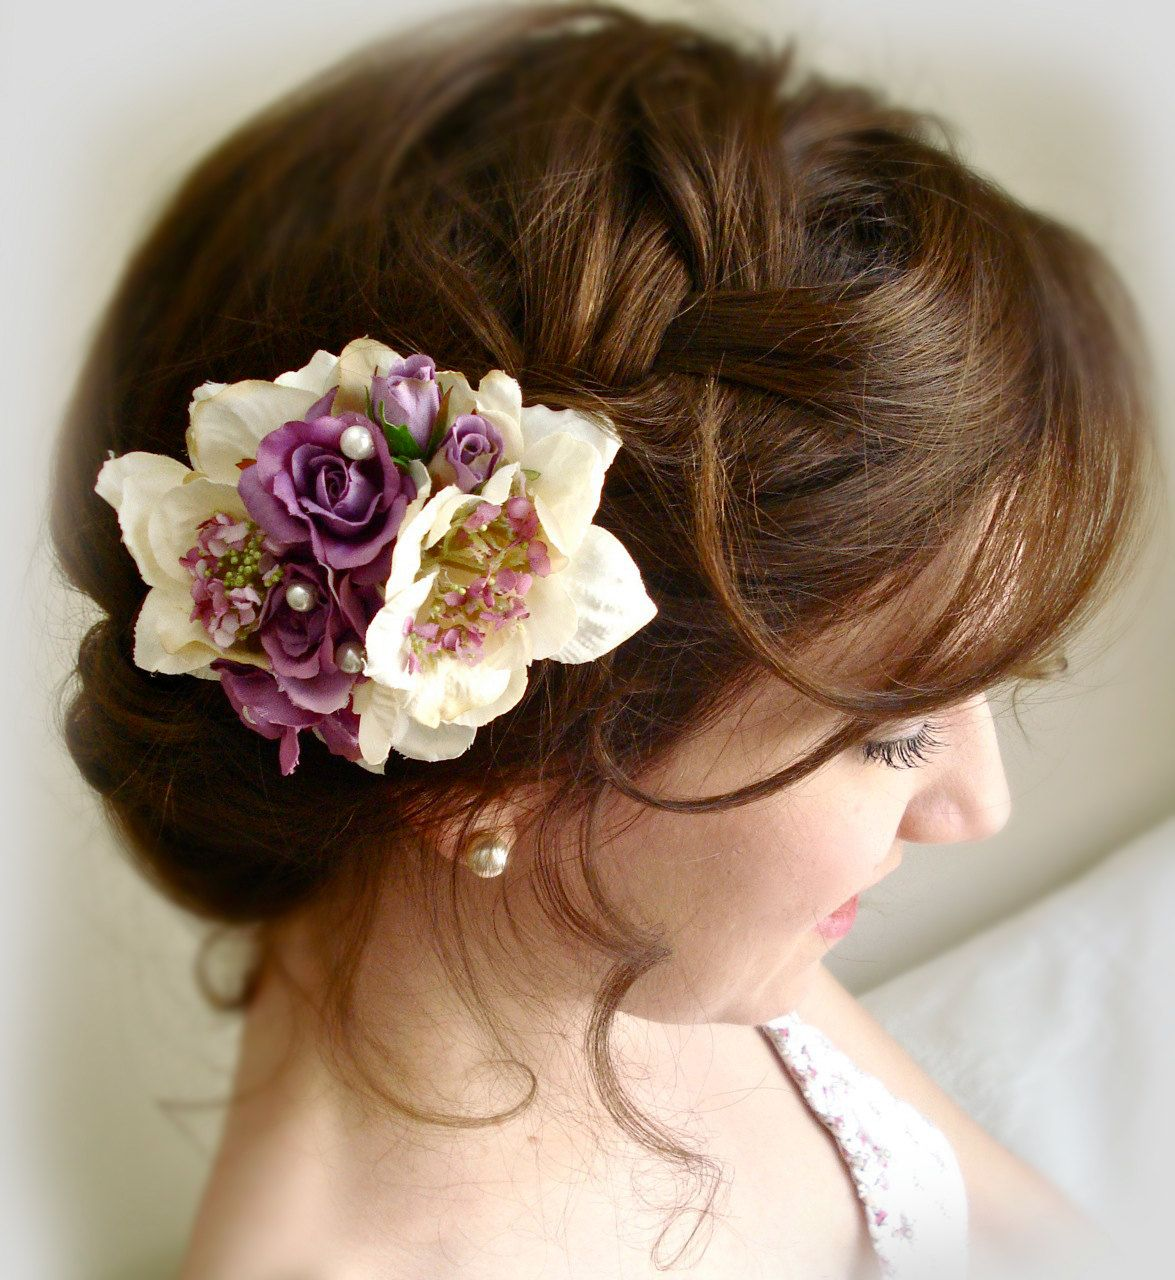 Purple Flower For Hair Bridal Hair Accessories Lavender Hair